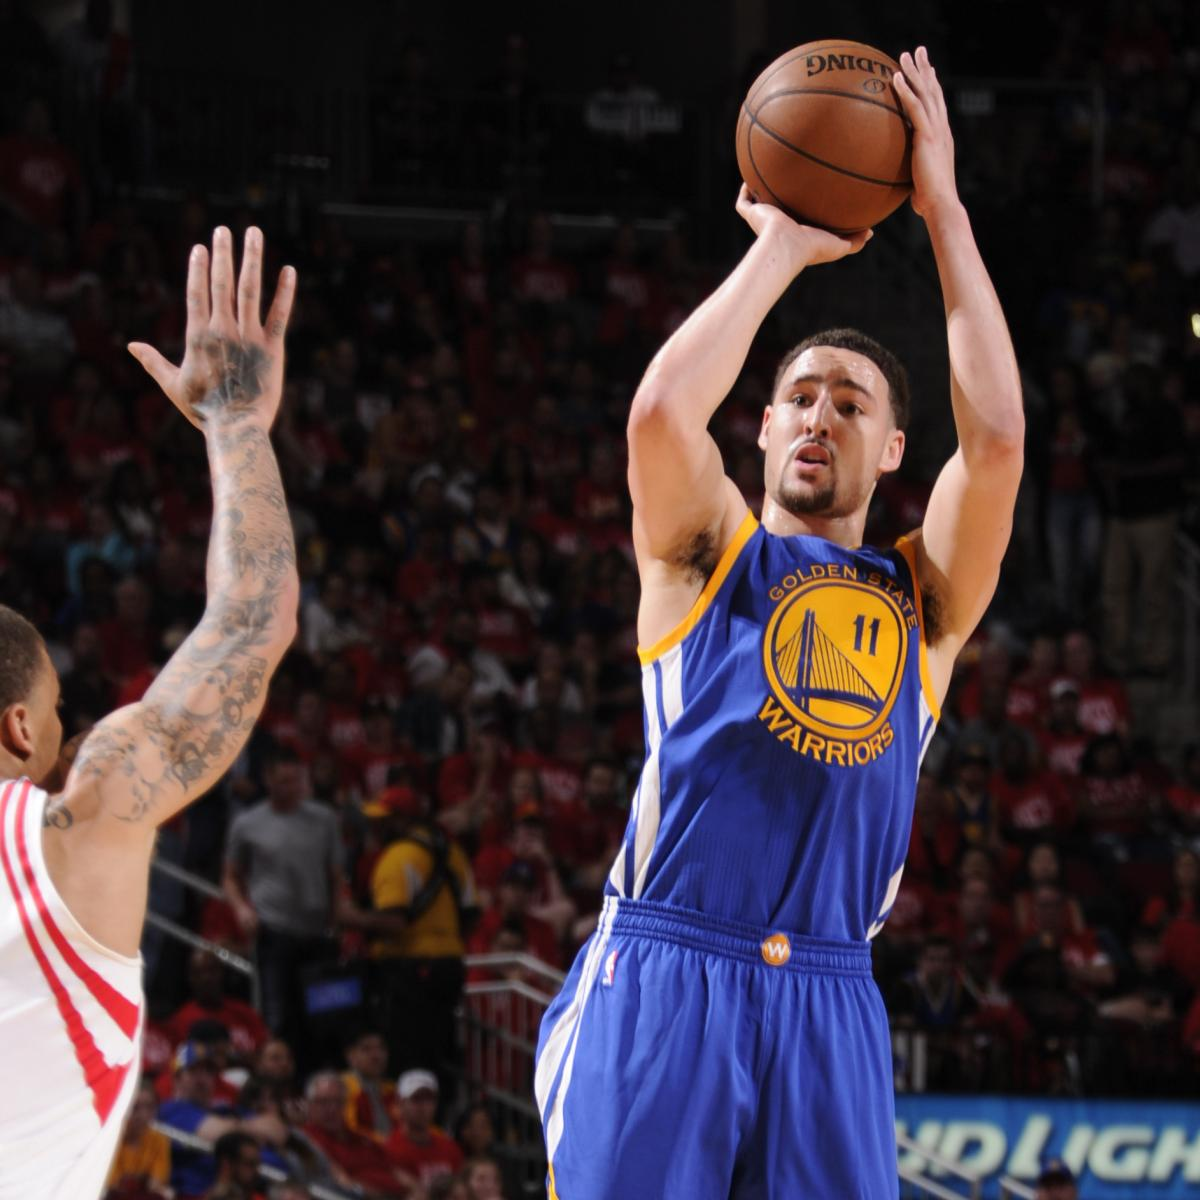 Rockets Vs Warriors May 24: Warriors Set NBA Record Vs. Rockets For Most 3-Pointers In